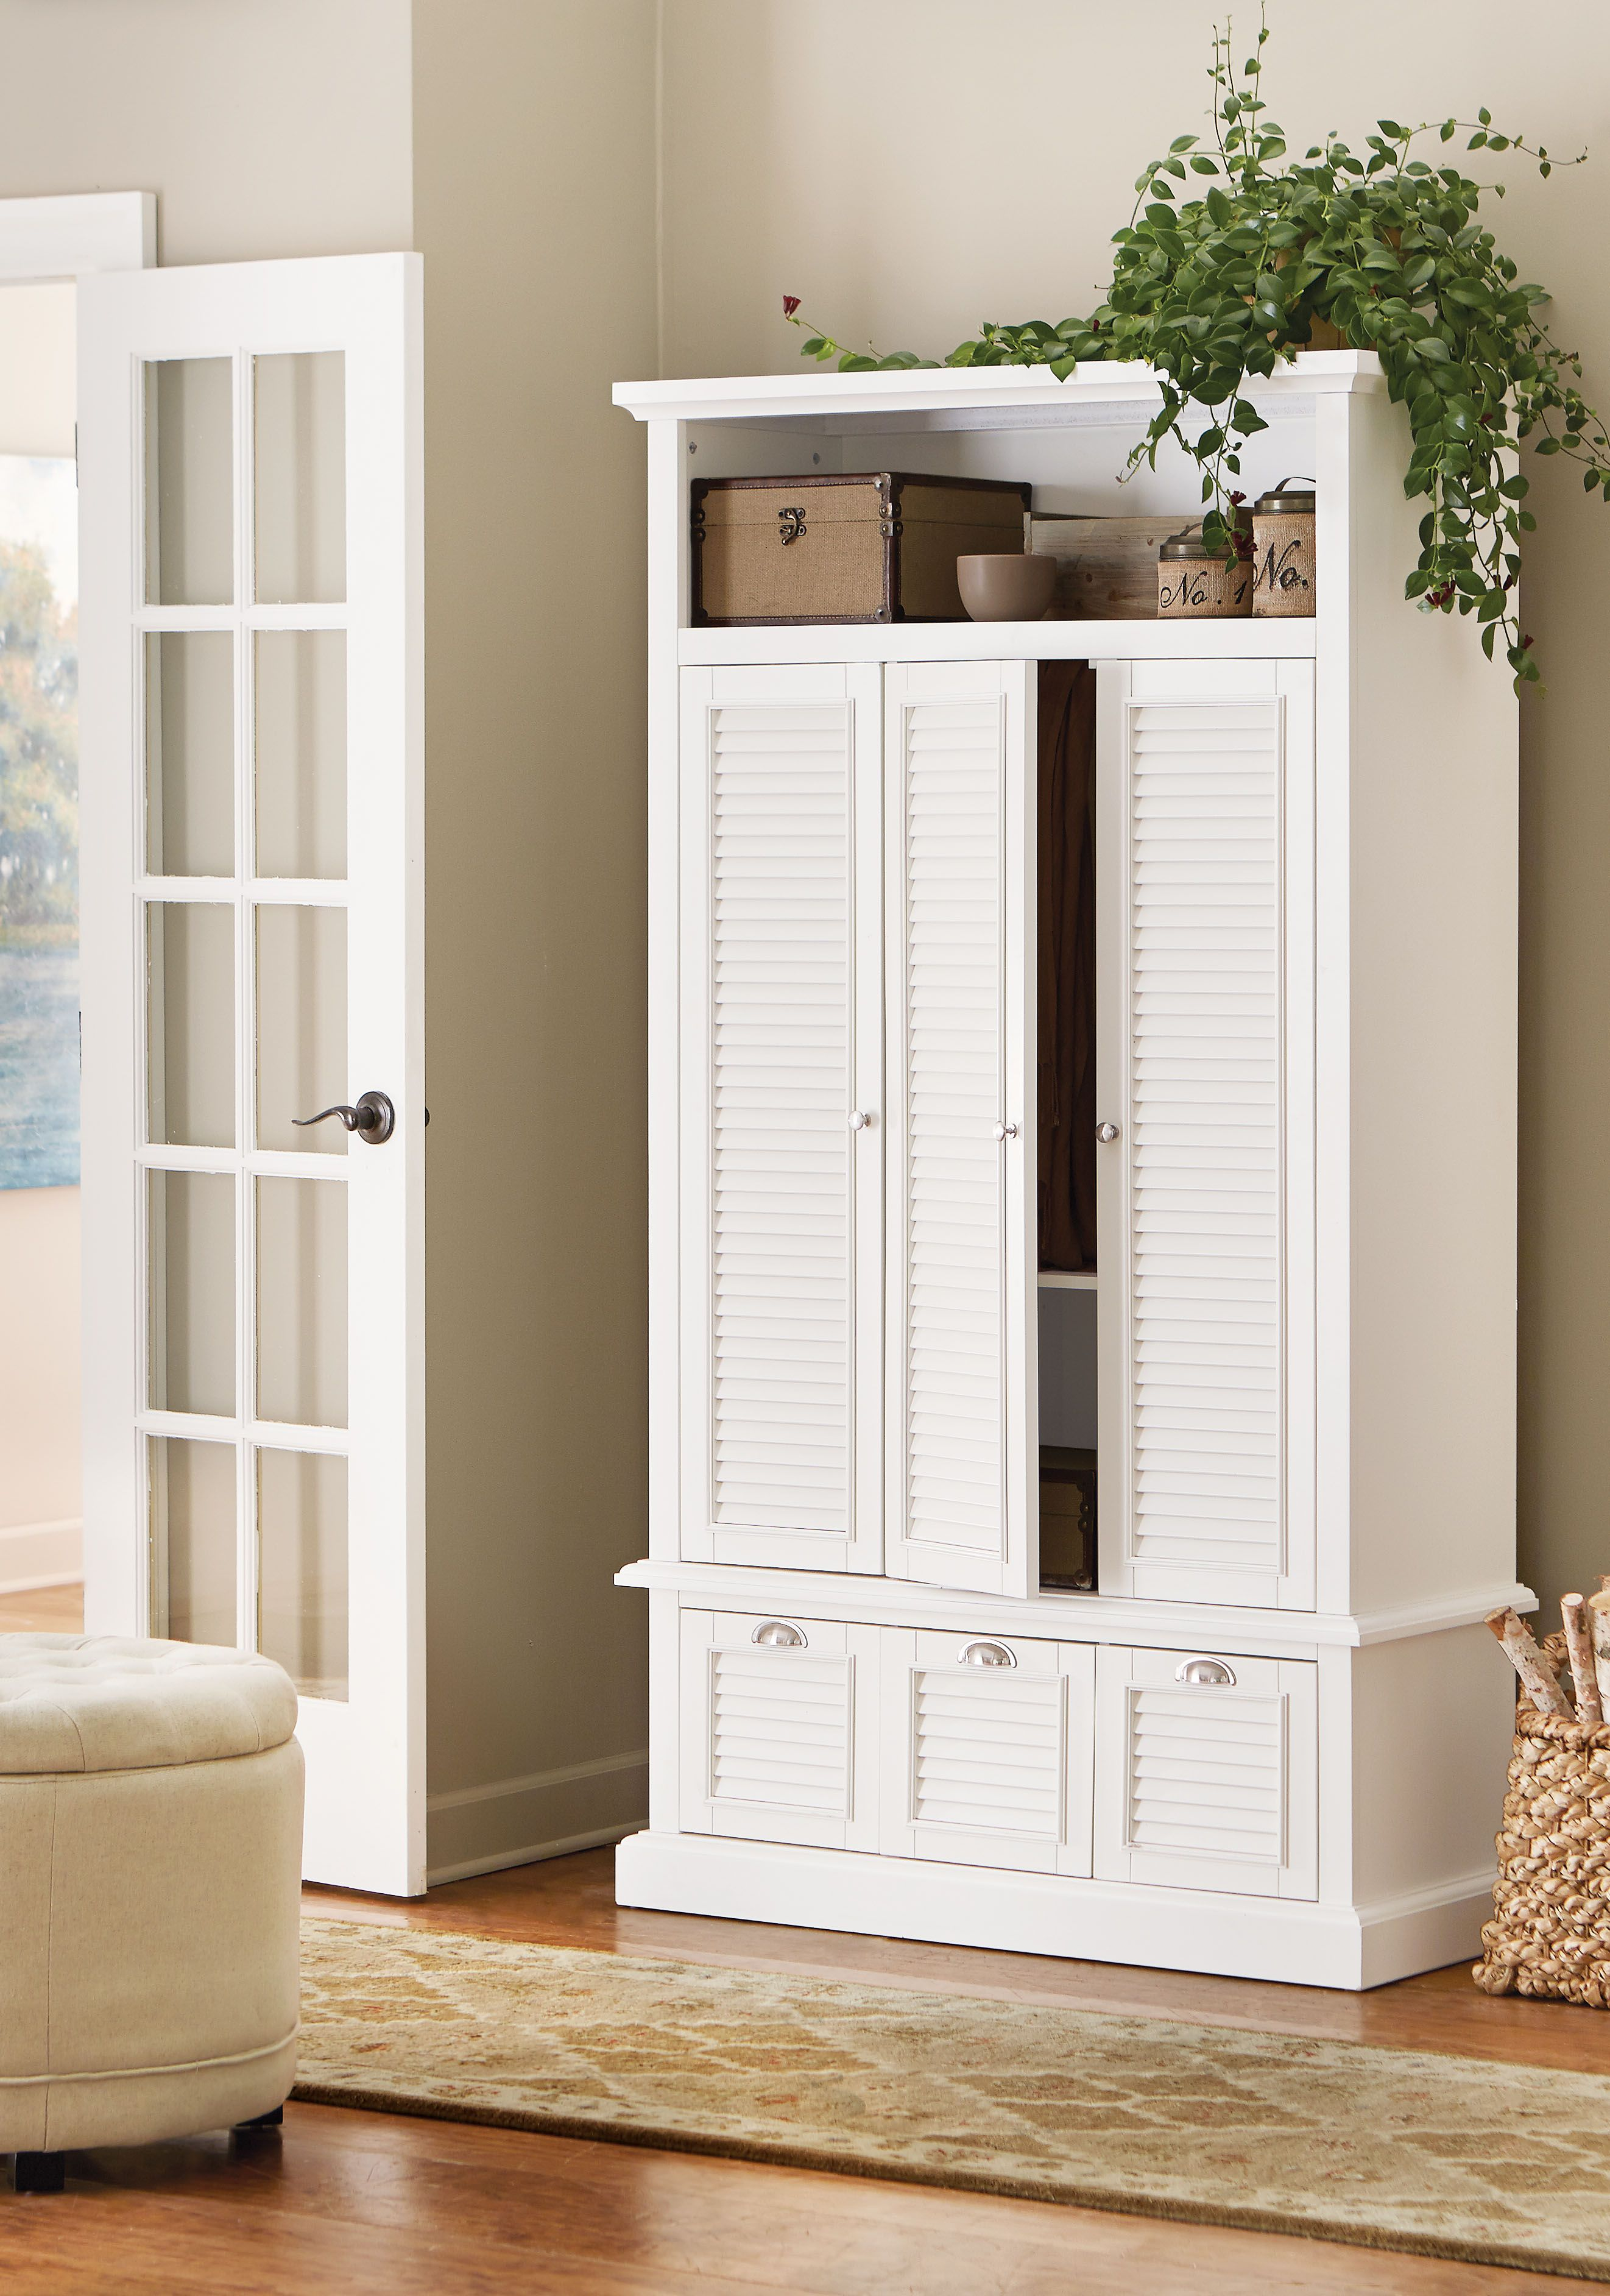 Keeping an entryway or hallway clutter free is easy with this eye-catching storage piece. HomeDecorators.com